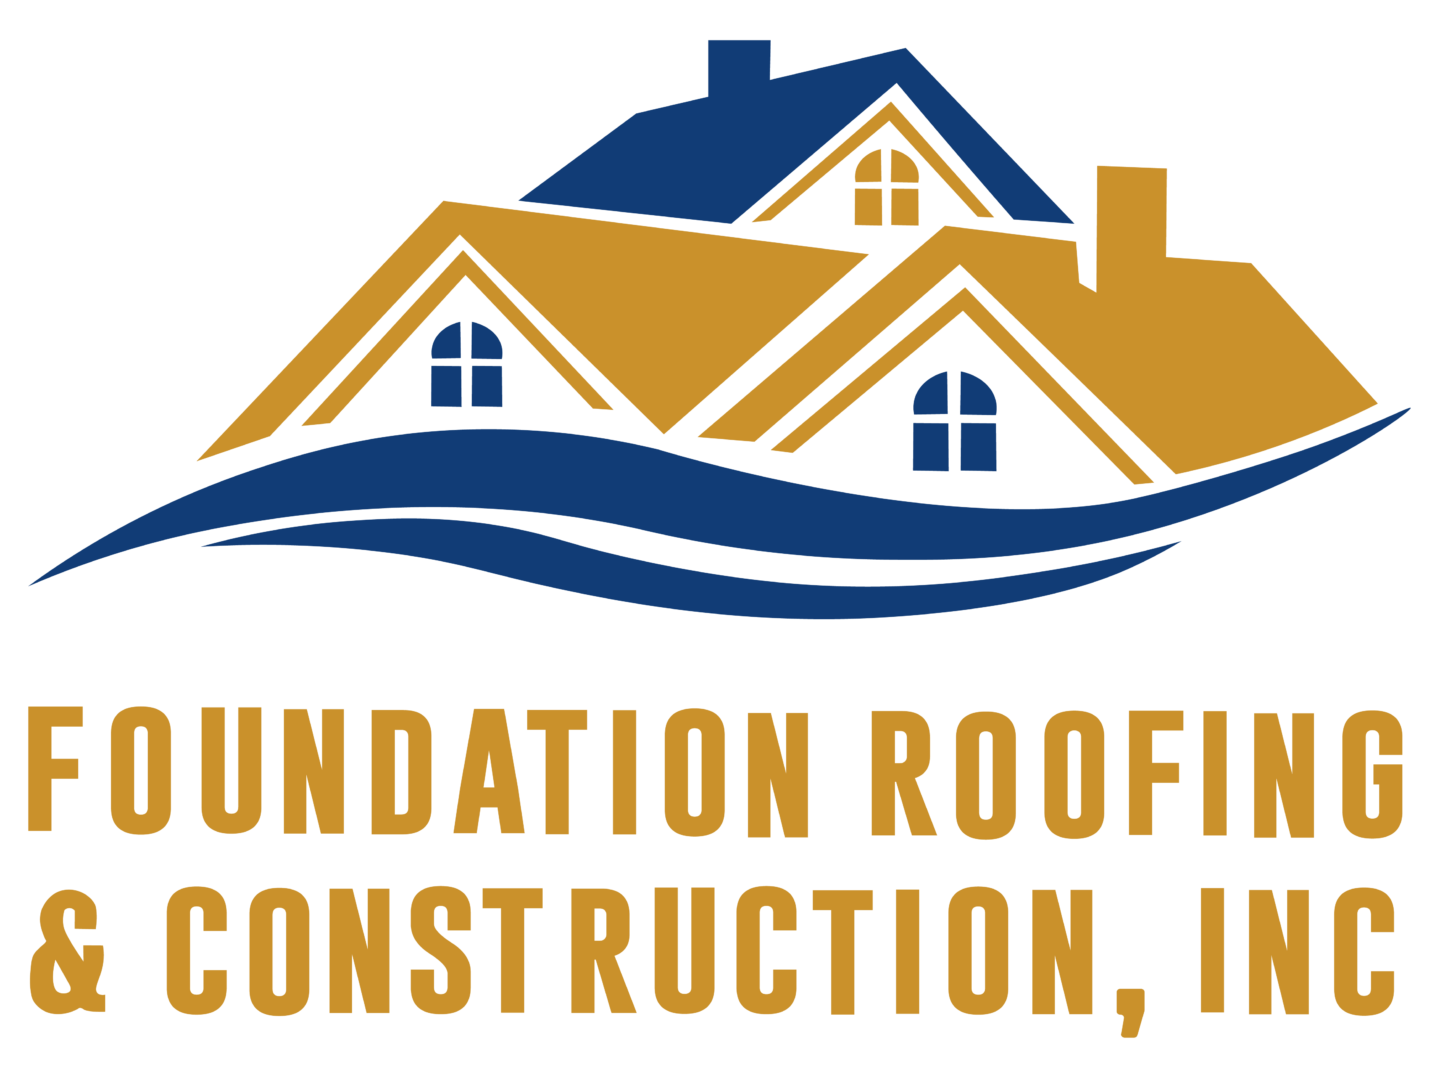 Foundation Roofing and Construction, Inc.